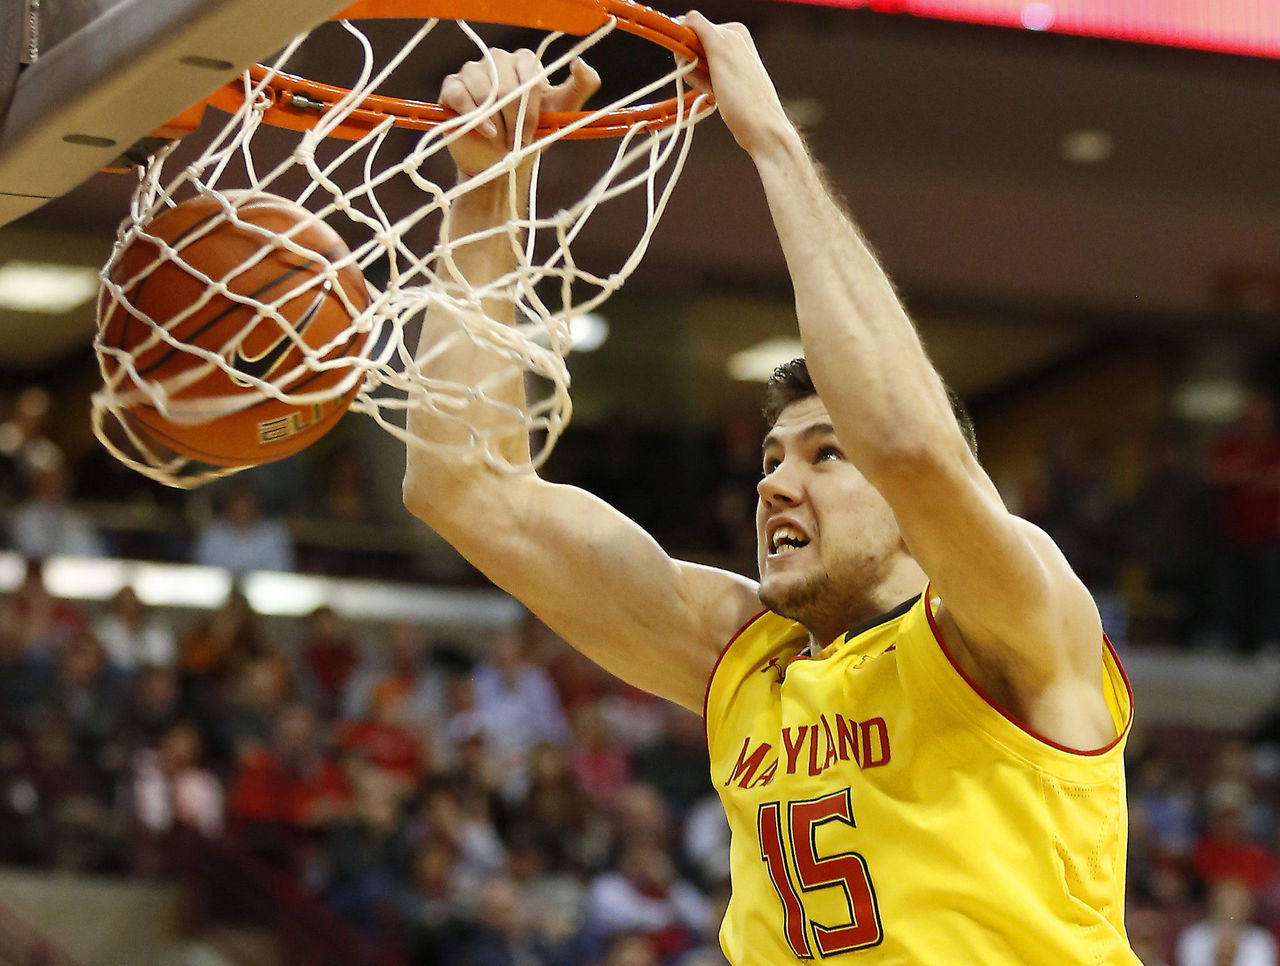 Cropped_2017-02-01t023300z_562622434_nocid_rtrmadp_3_ncaa-basketball-maryland-at-ohio-state